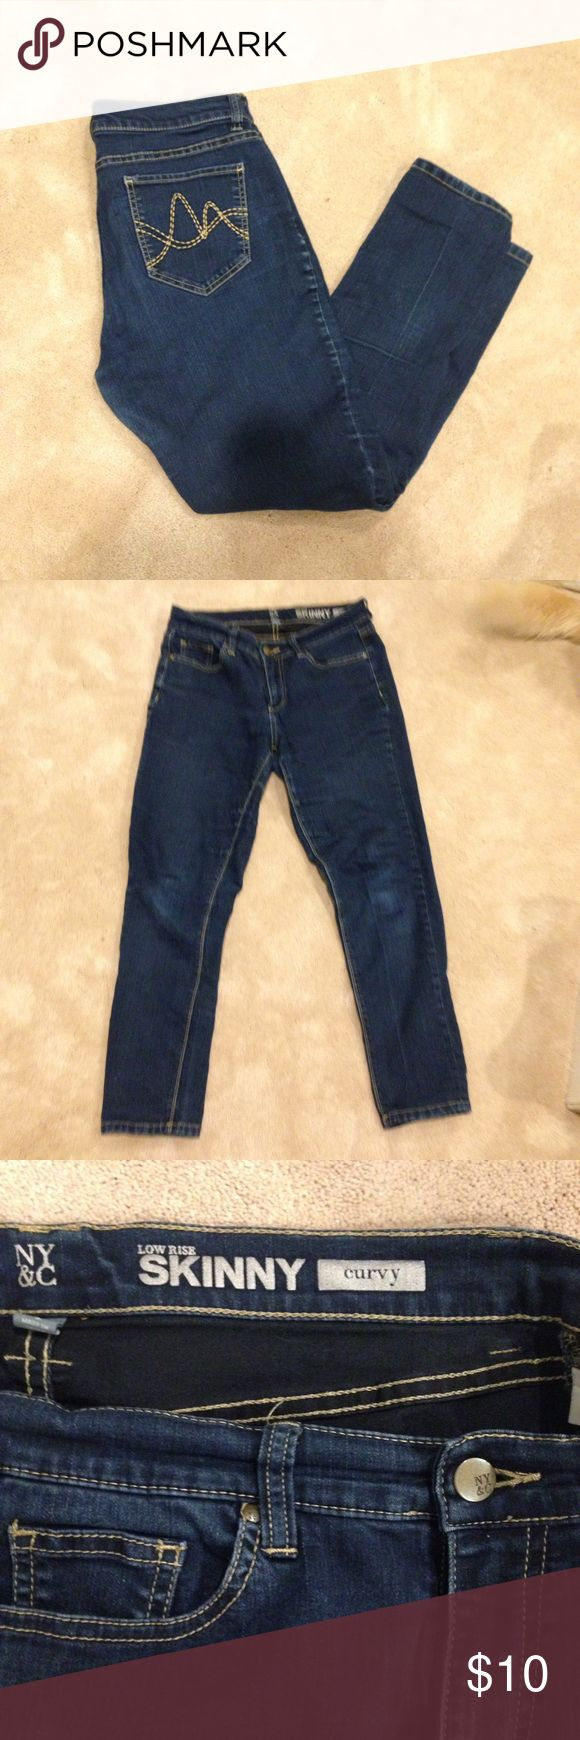 NY&C Dark Low Rise Skinny Curvy Jeans Stretchy 8 Super comfy skinny jeans with a little room in the back for your tush. Size 8. Had a bit of stretch to it. Color a little faded from going through the wash but still very nice New York & Company Jeans Skinny